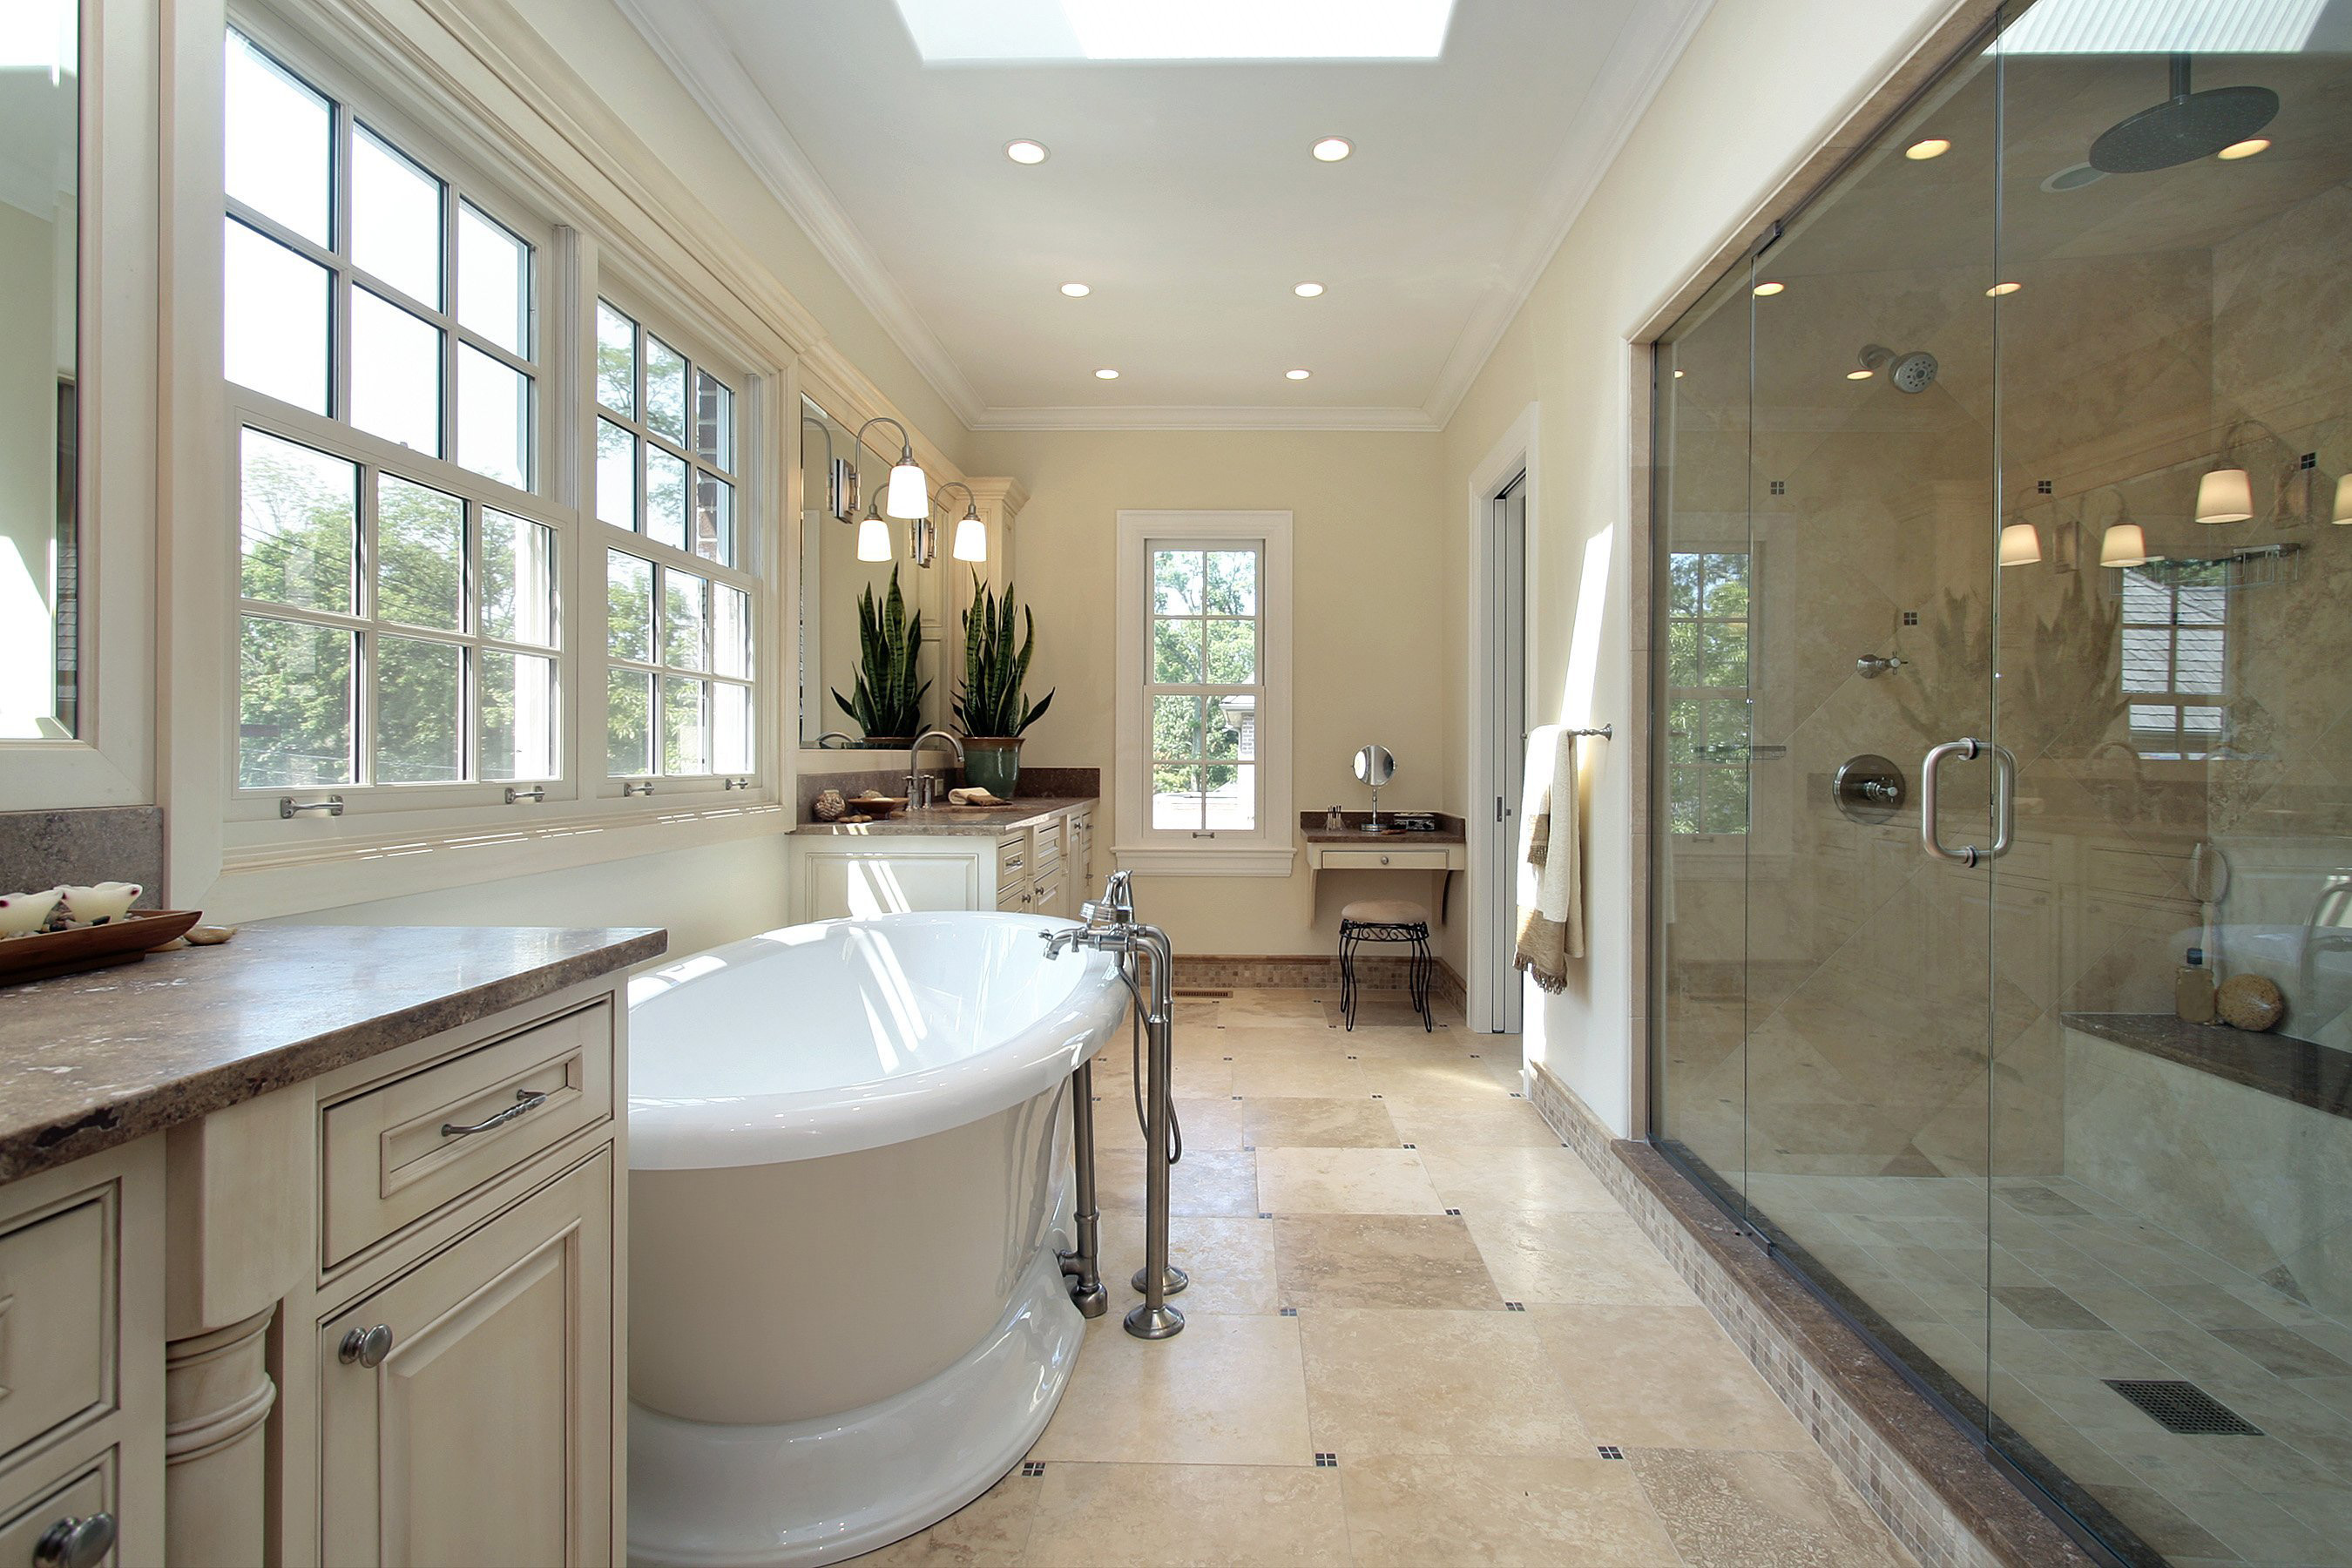 How much does it cost to remodel a bathroom large and beautiful